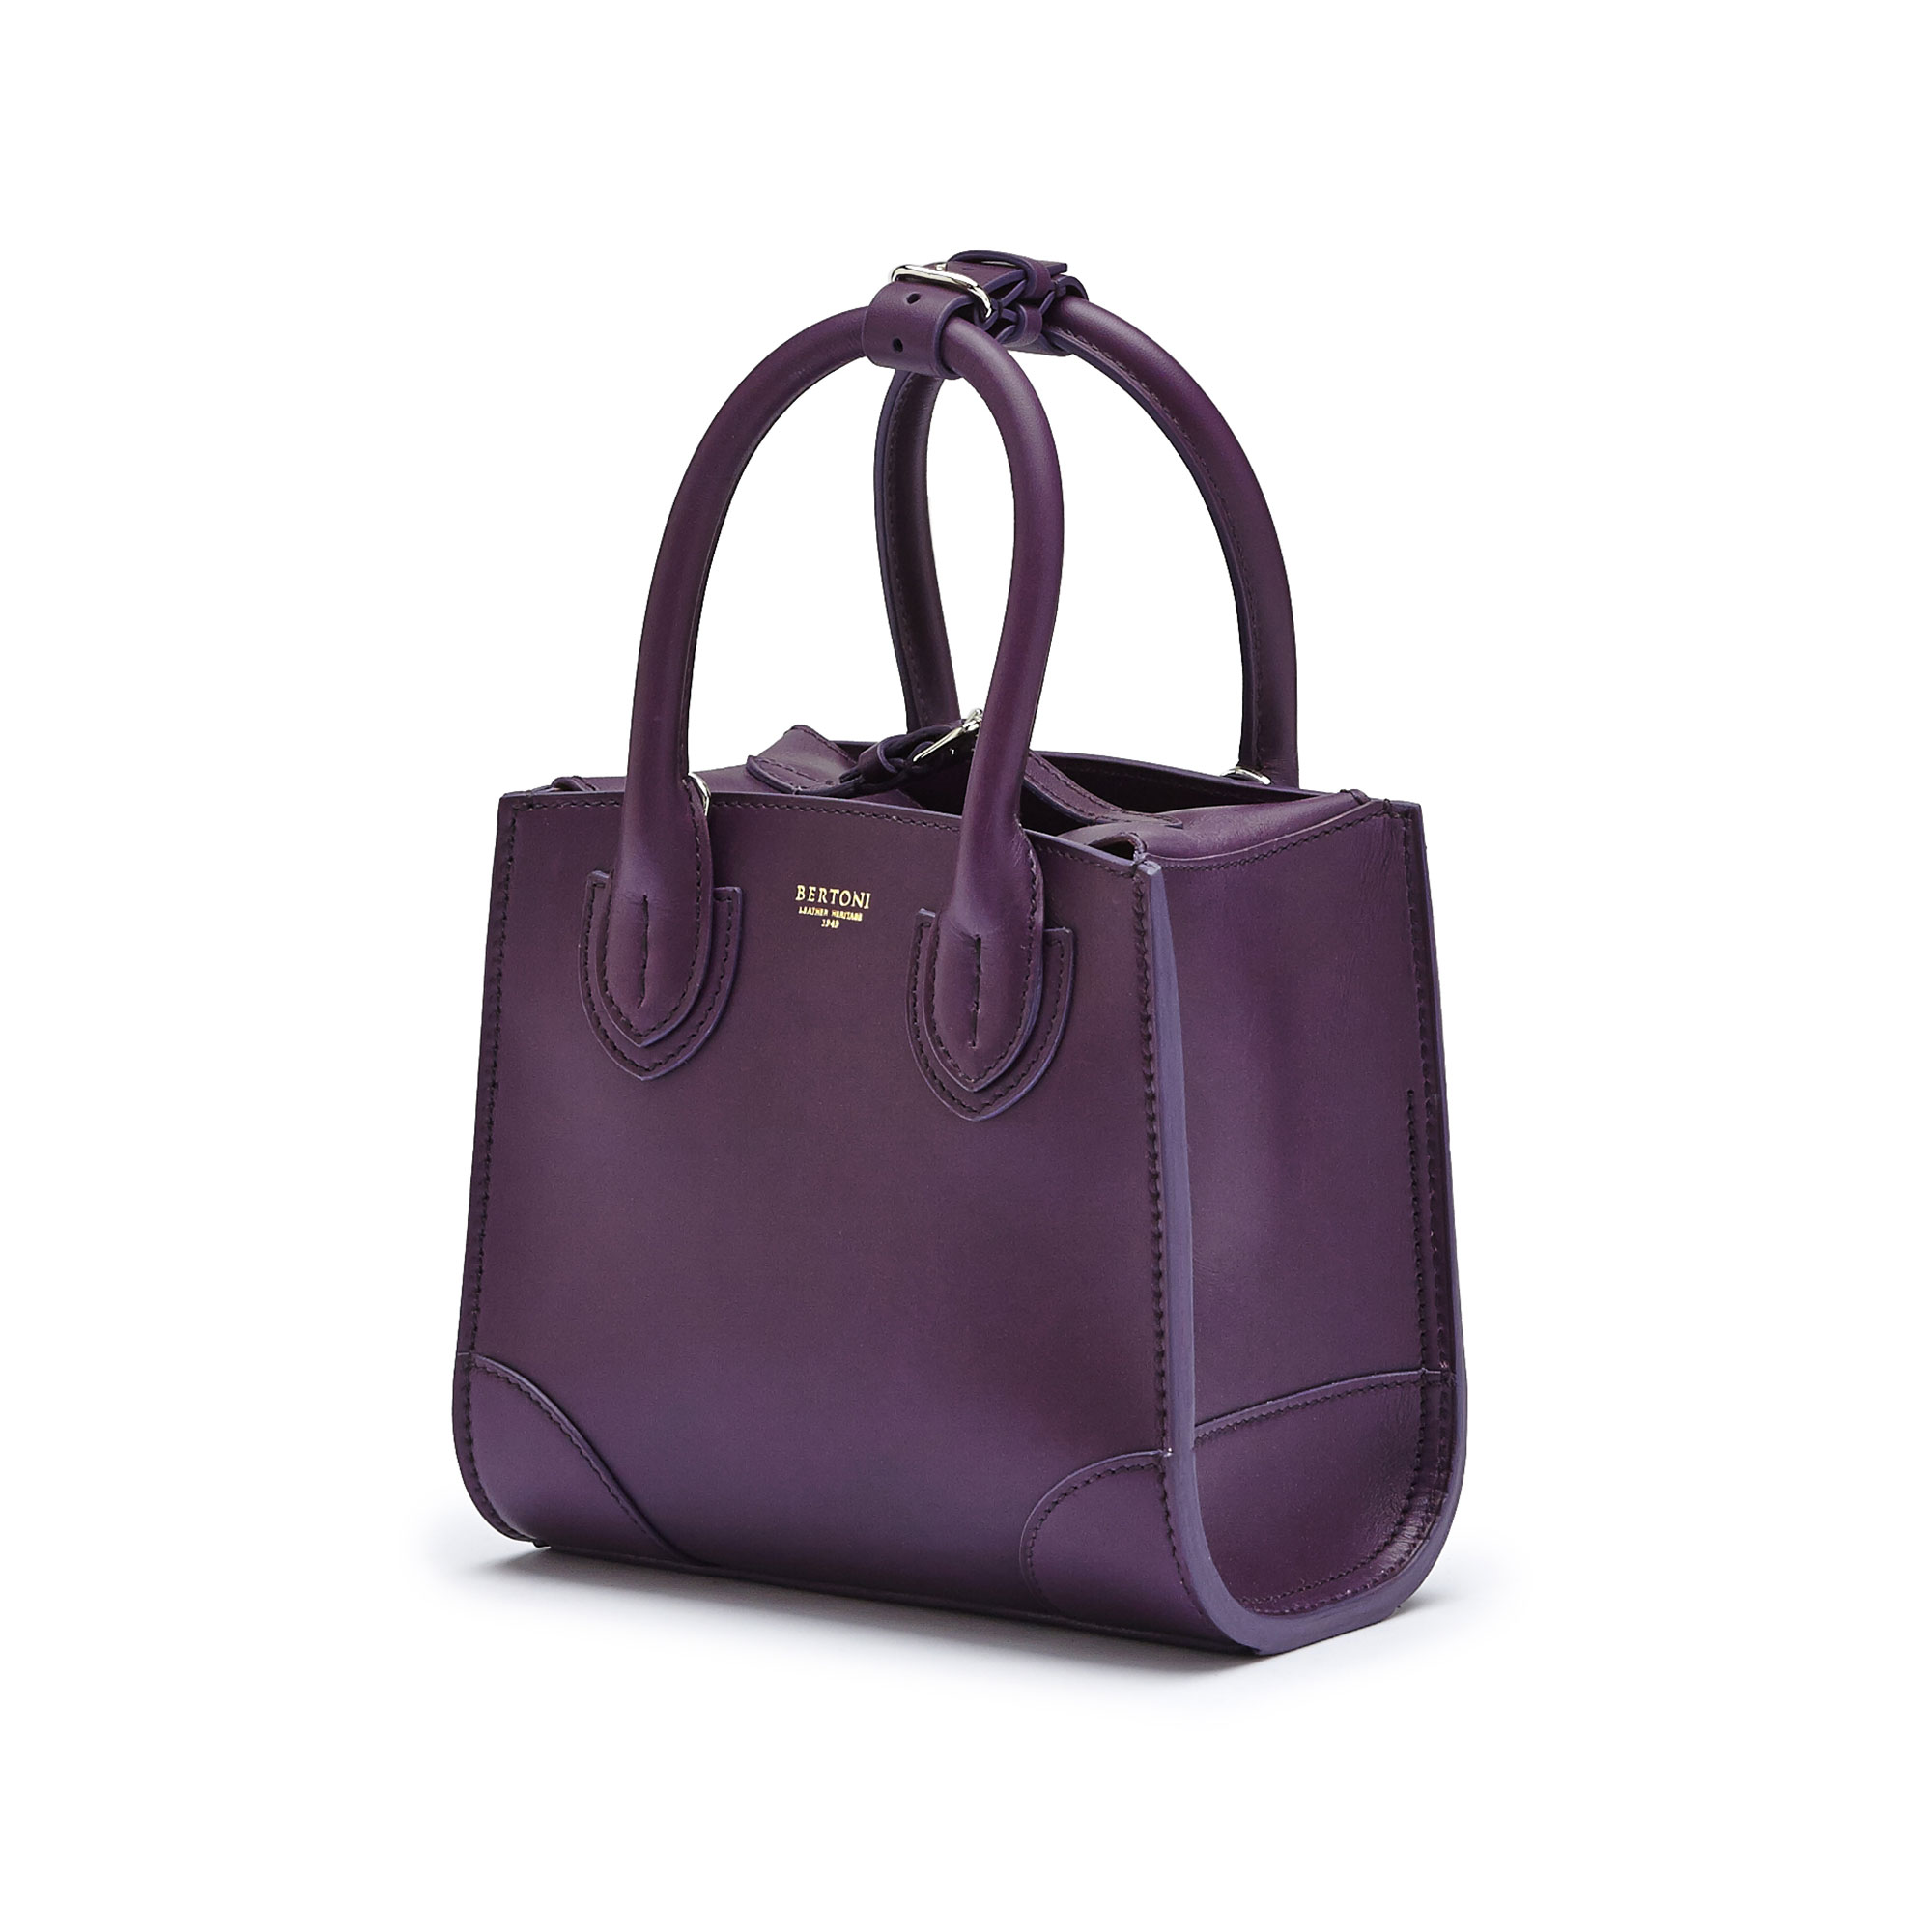 The aubergine color french calf Darcy small bag by Bertoni 1949 03